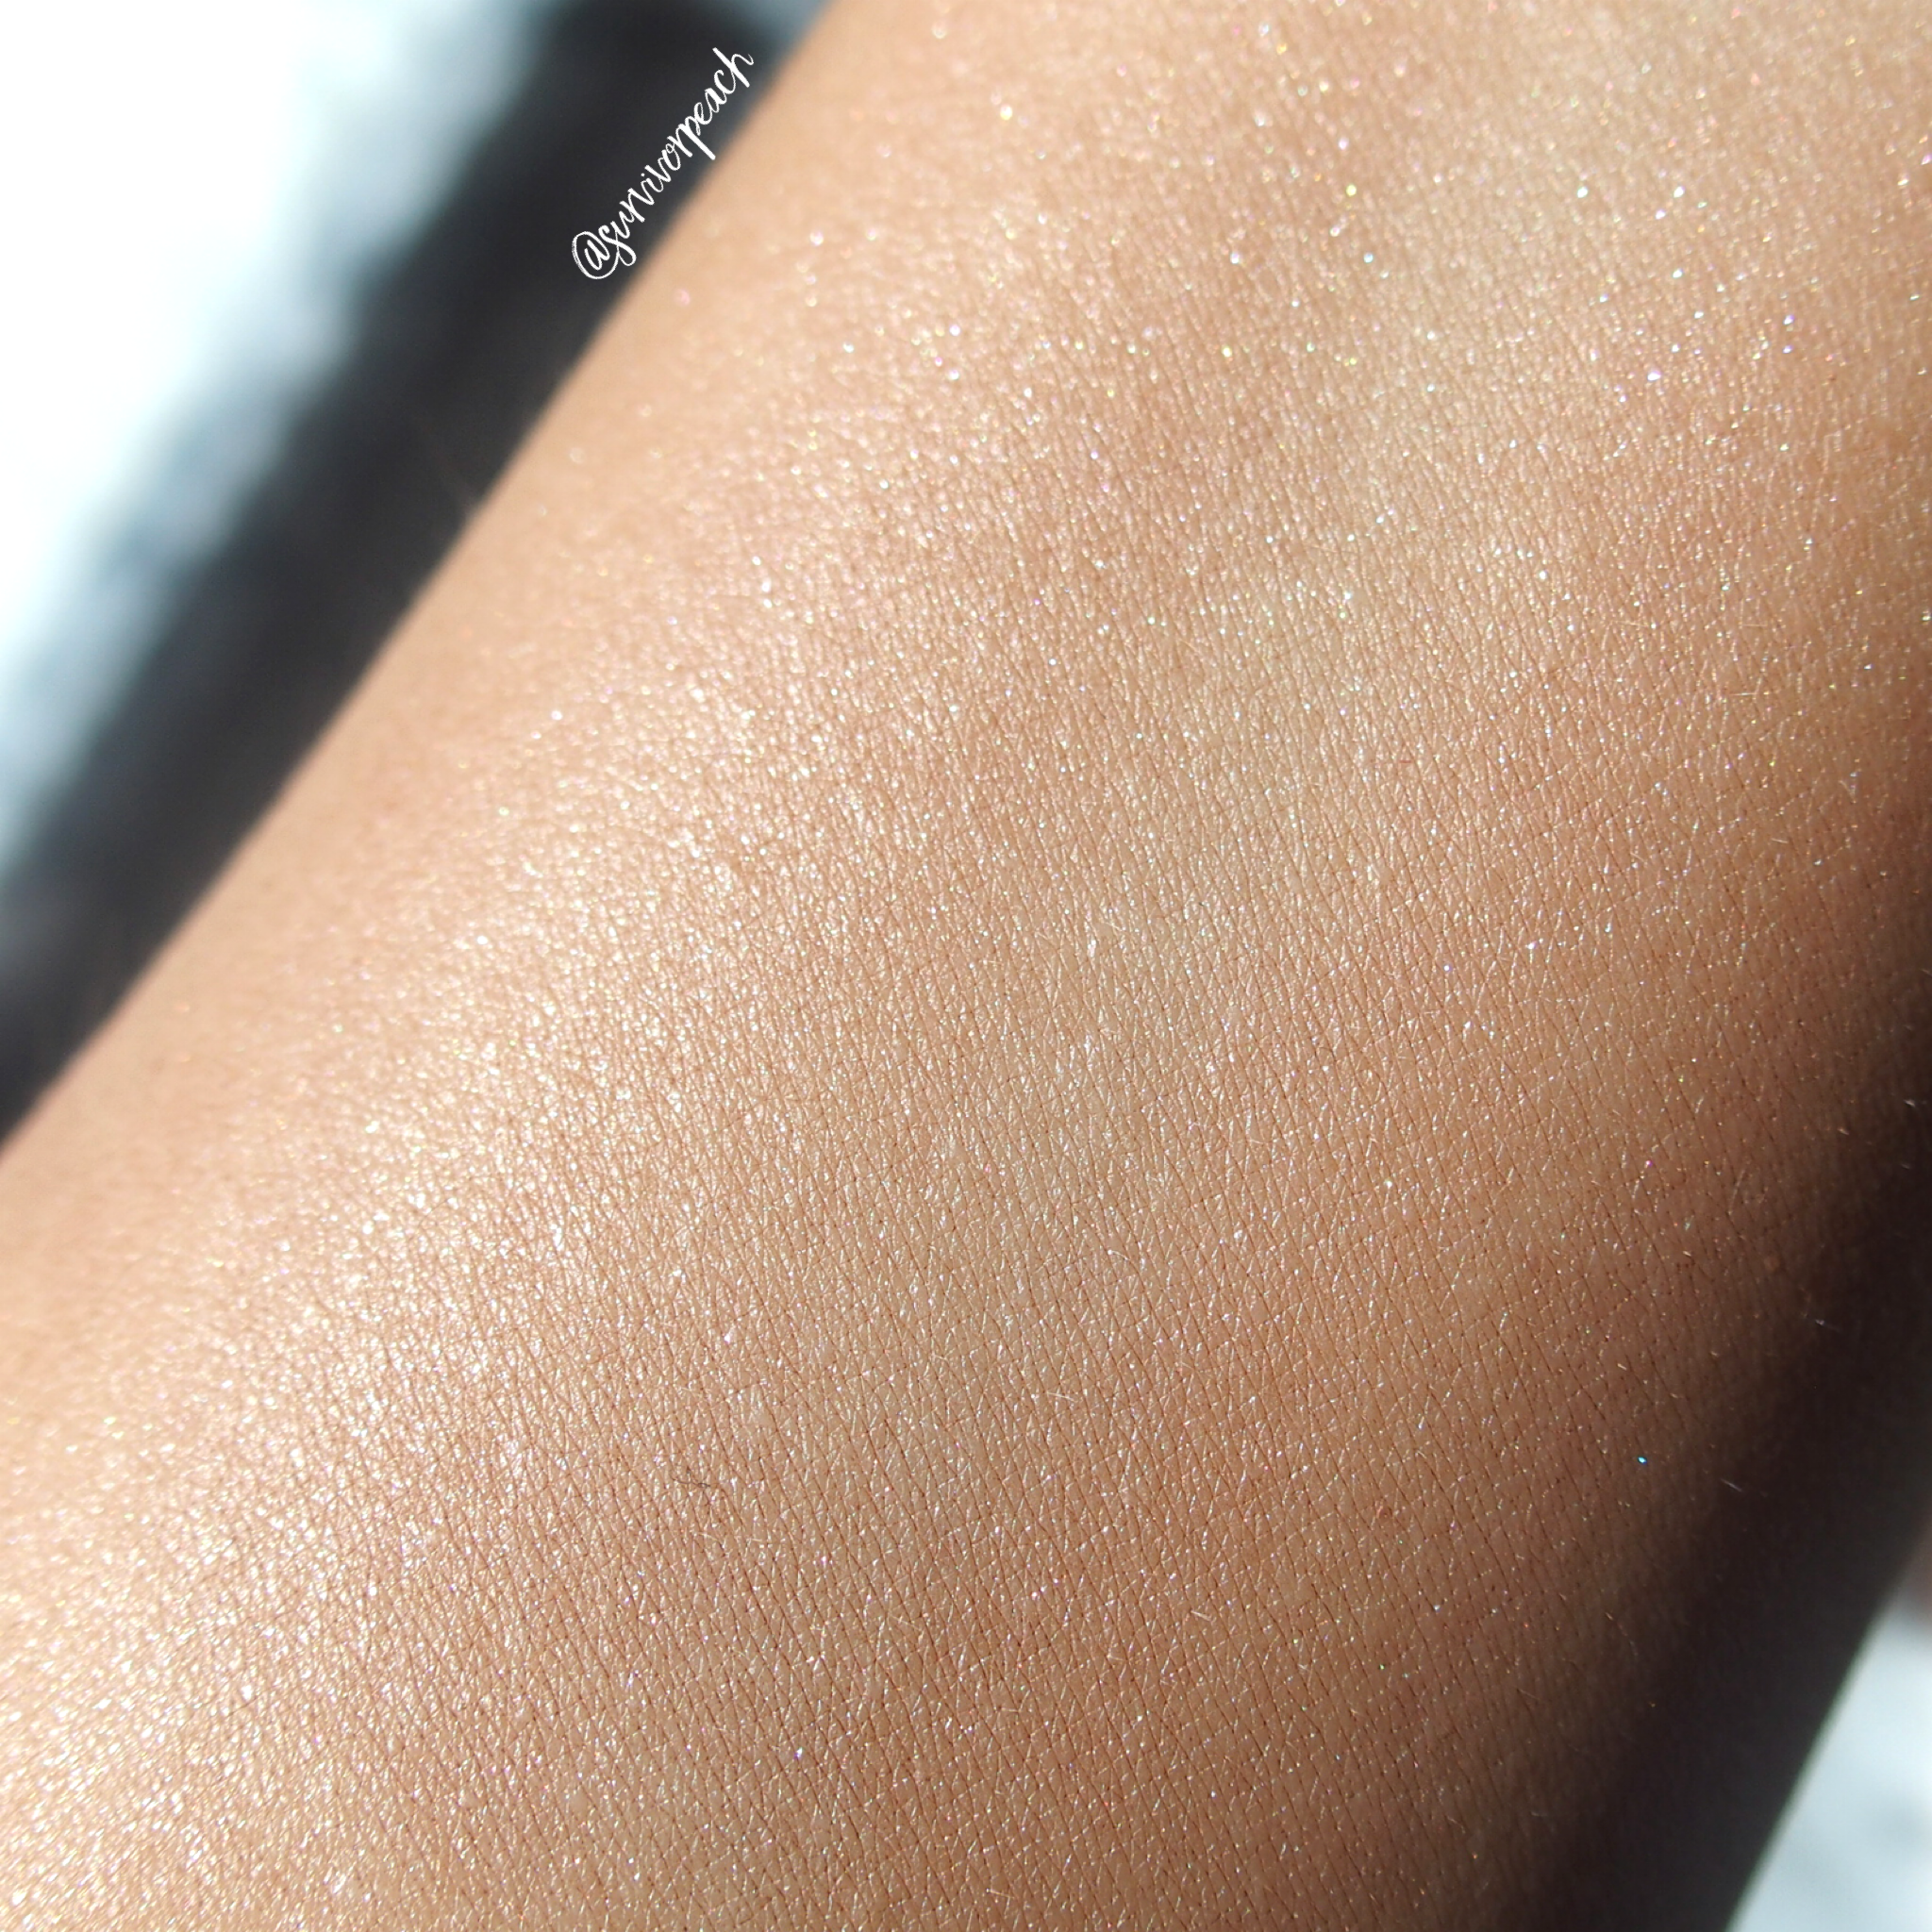 Swatches of the Lingerie Soufflé Skin Perfecting Primer - Sunkissed